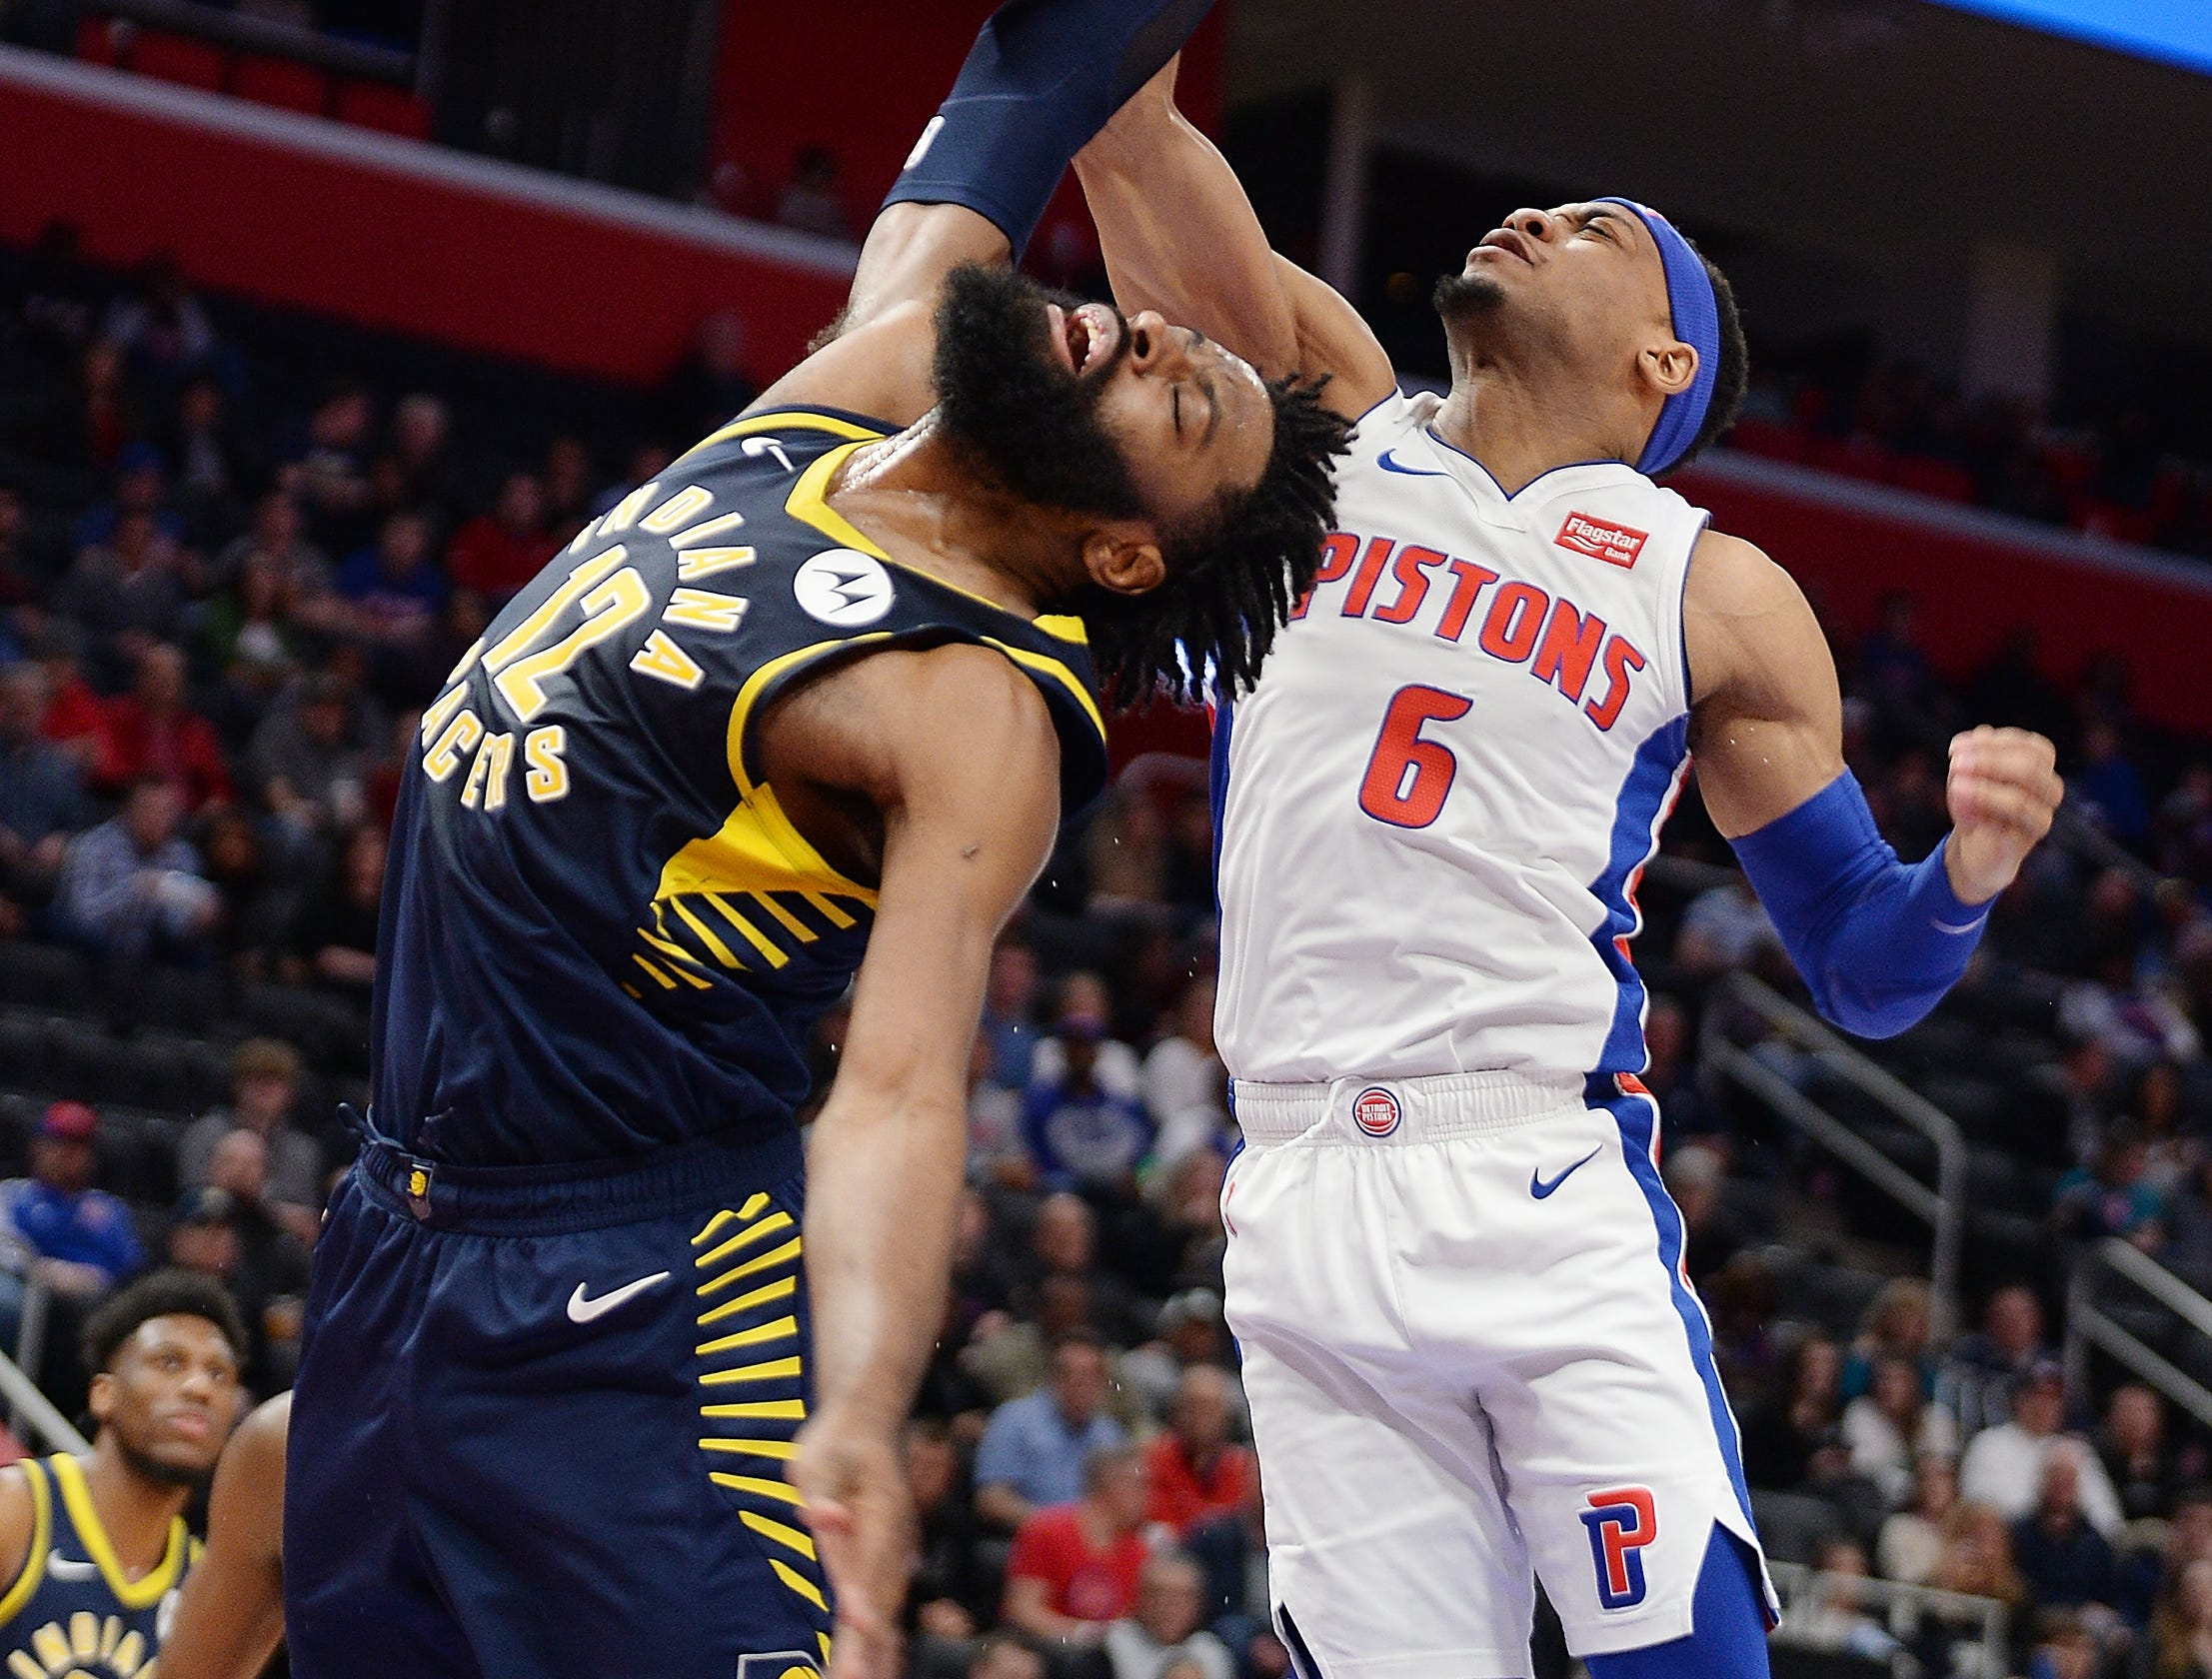 Pistons' Bruce Brown fouls Pacers' Tyreke Evans in the fourth quarter.